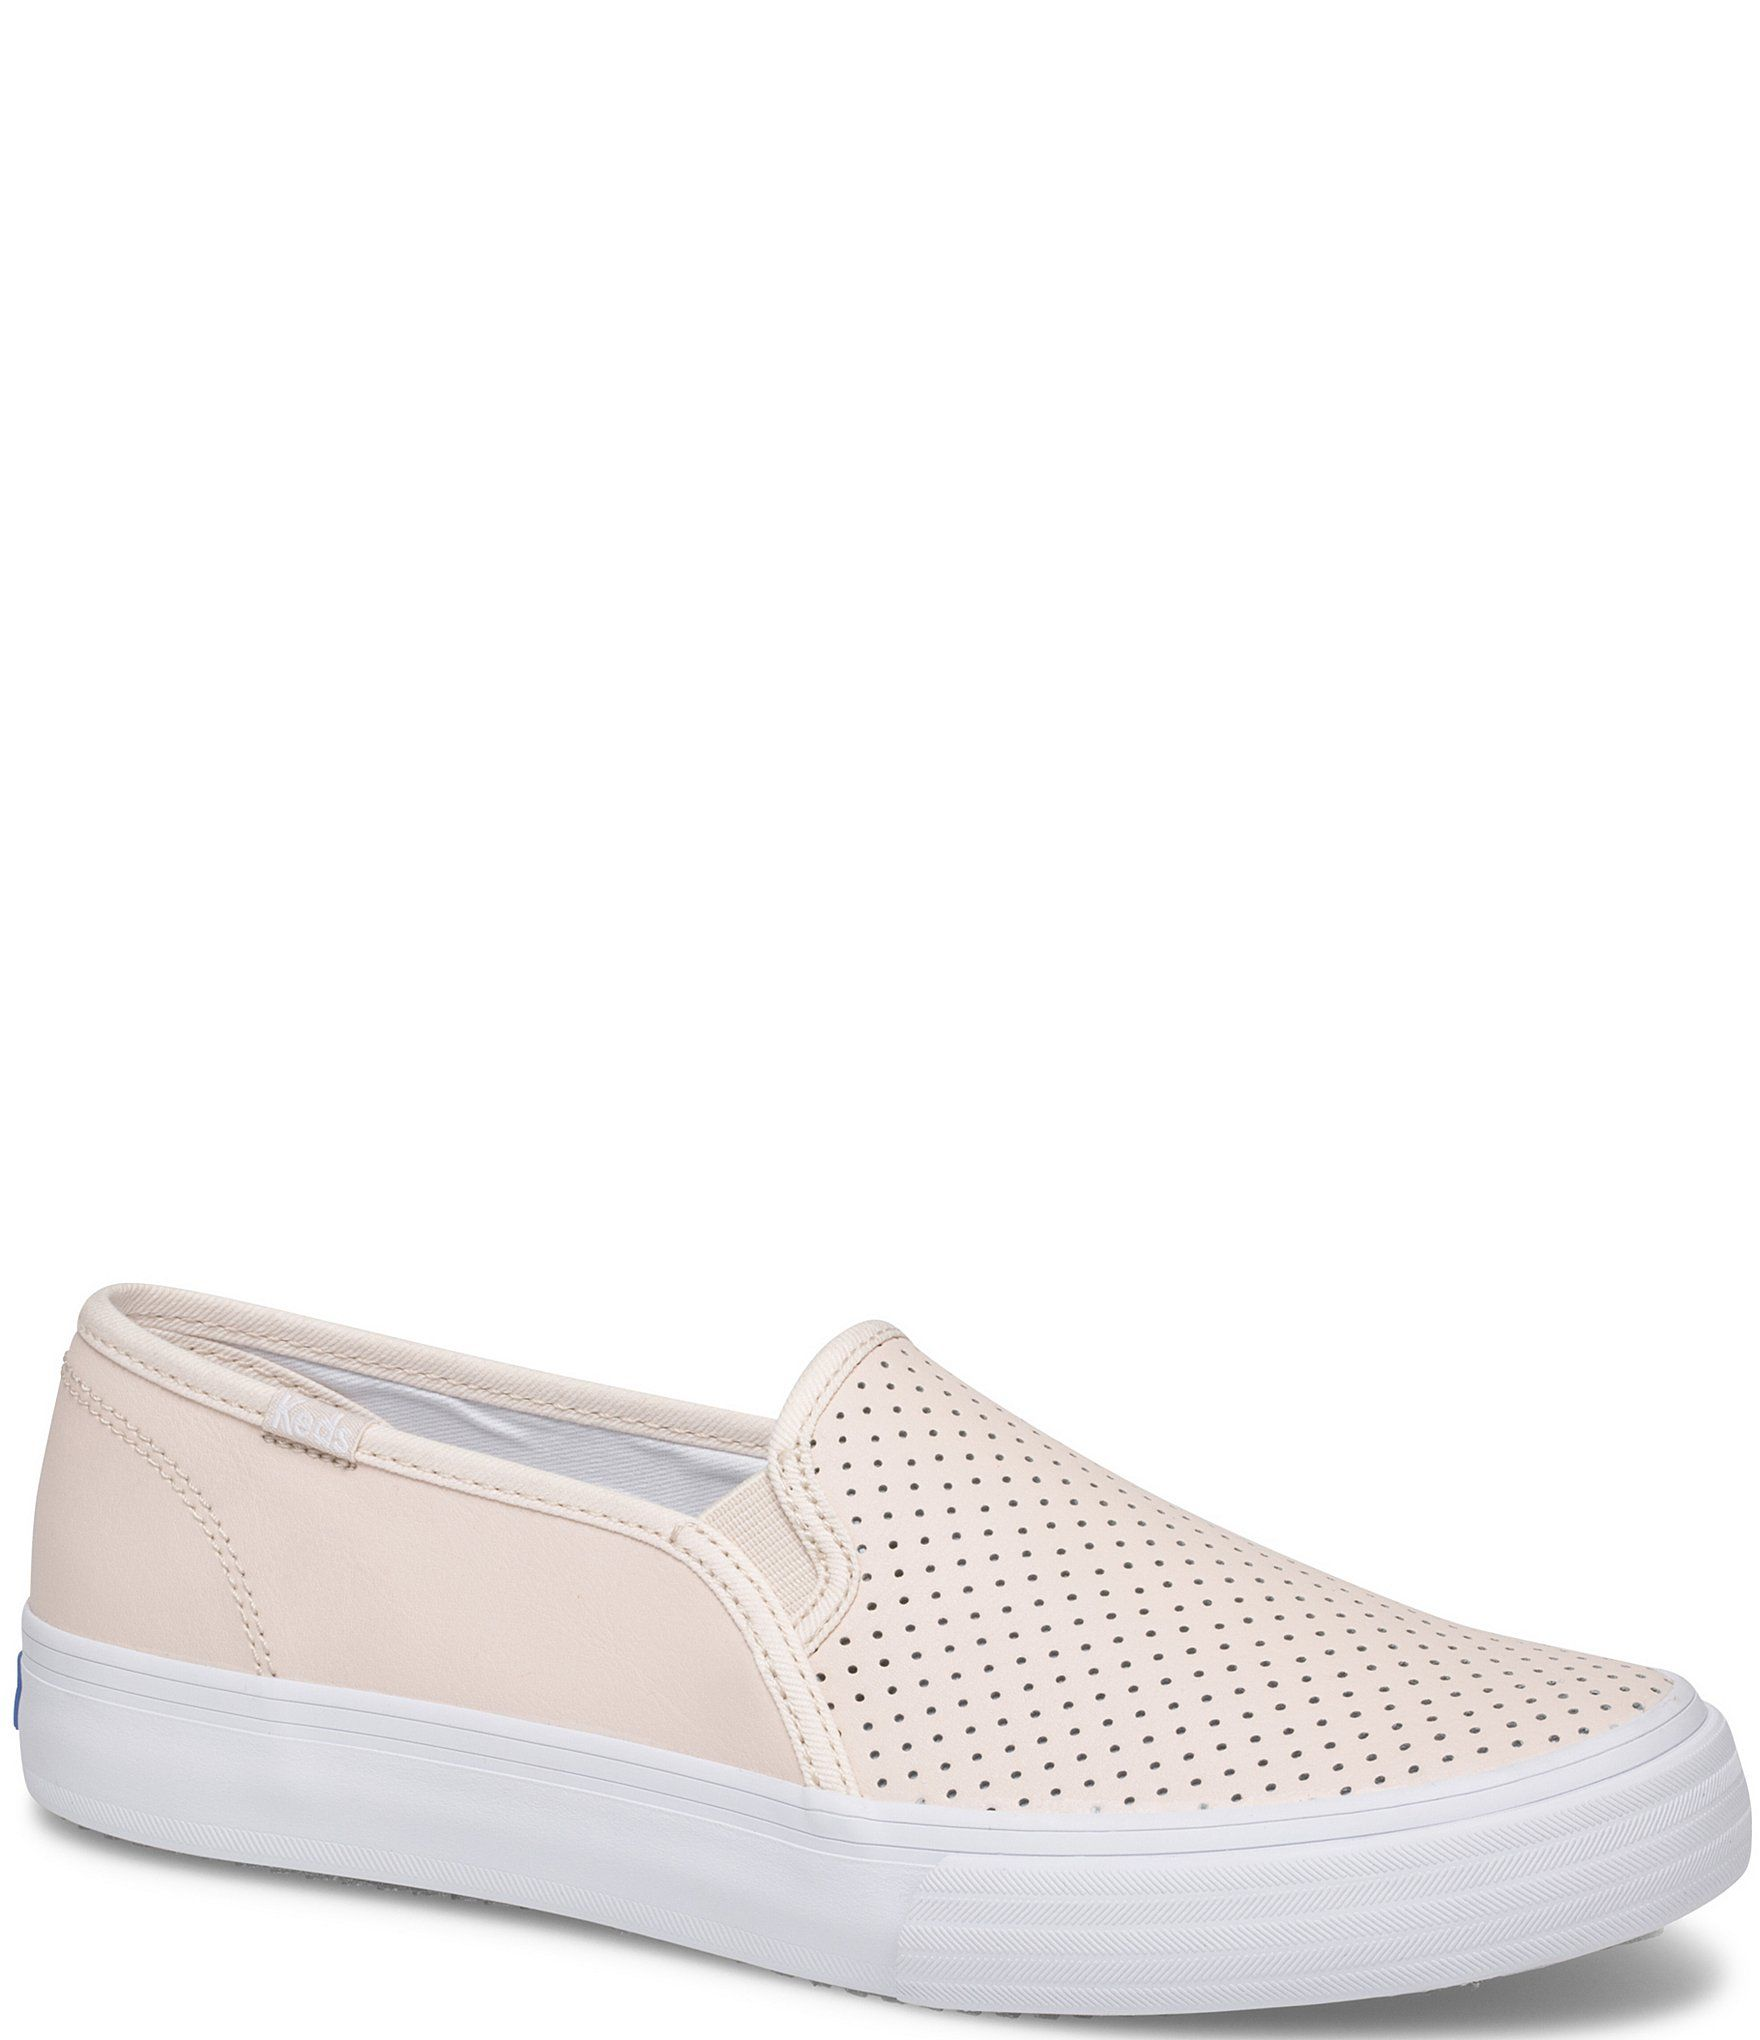 From Keds, the Double Decker Perforated Leather Slip On Sneakers feature:Leather upperPerforated detailsSlip on with goringFabric liningDream Foam™ footbedRubber outsoleFlat heelImported.